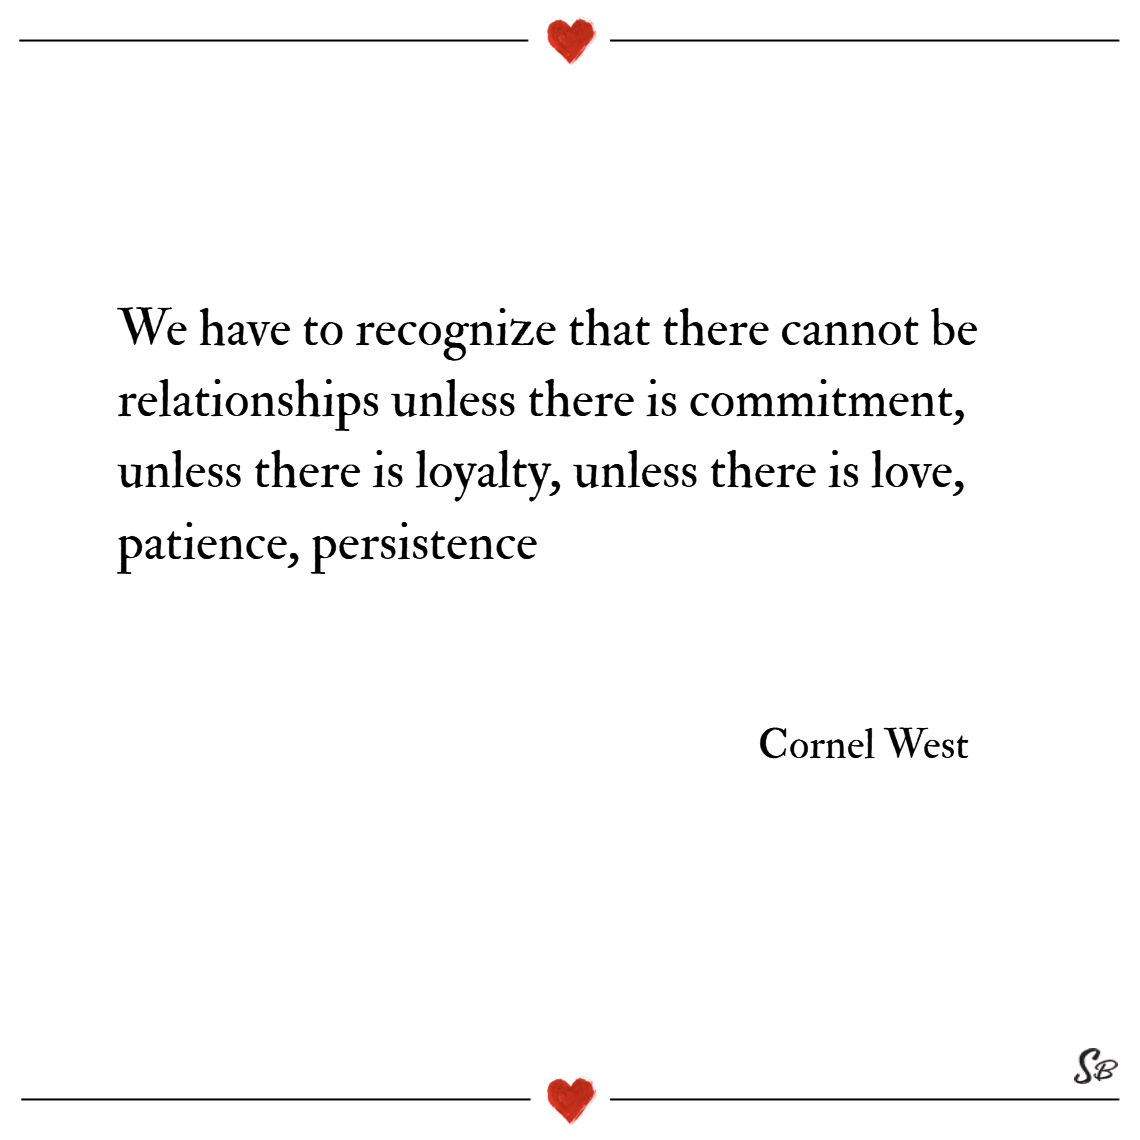 We have to recognize that there cannot be relation